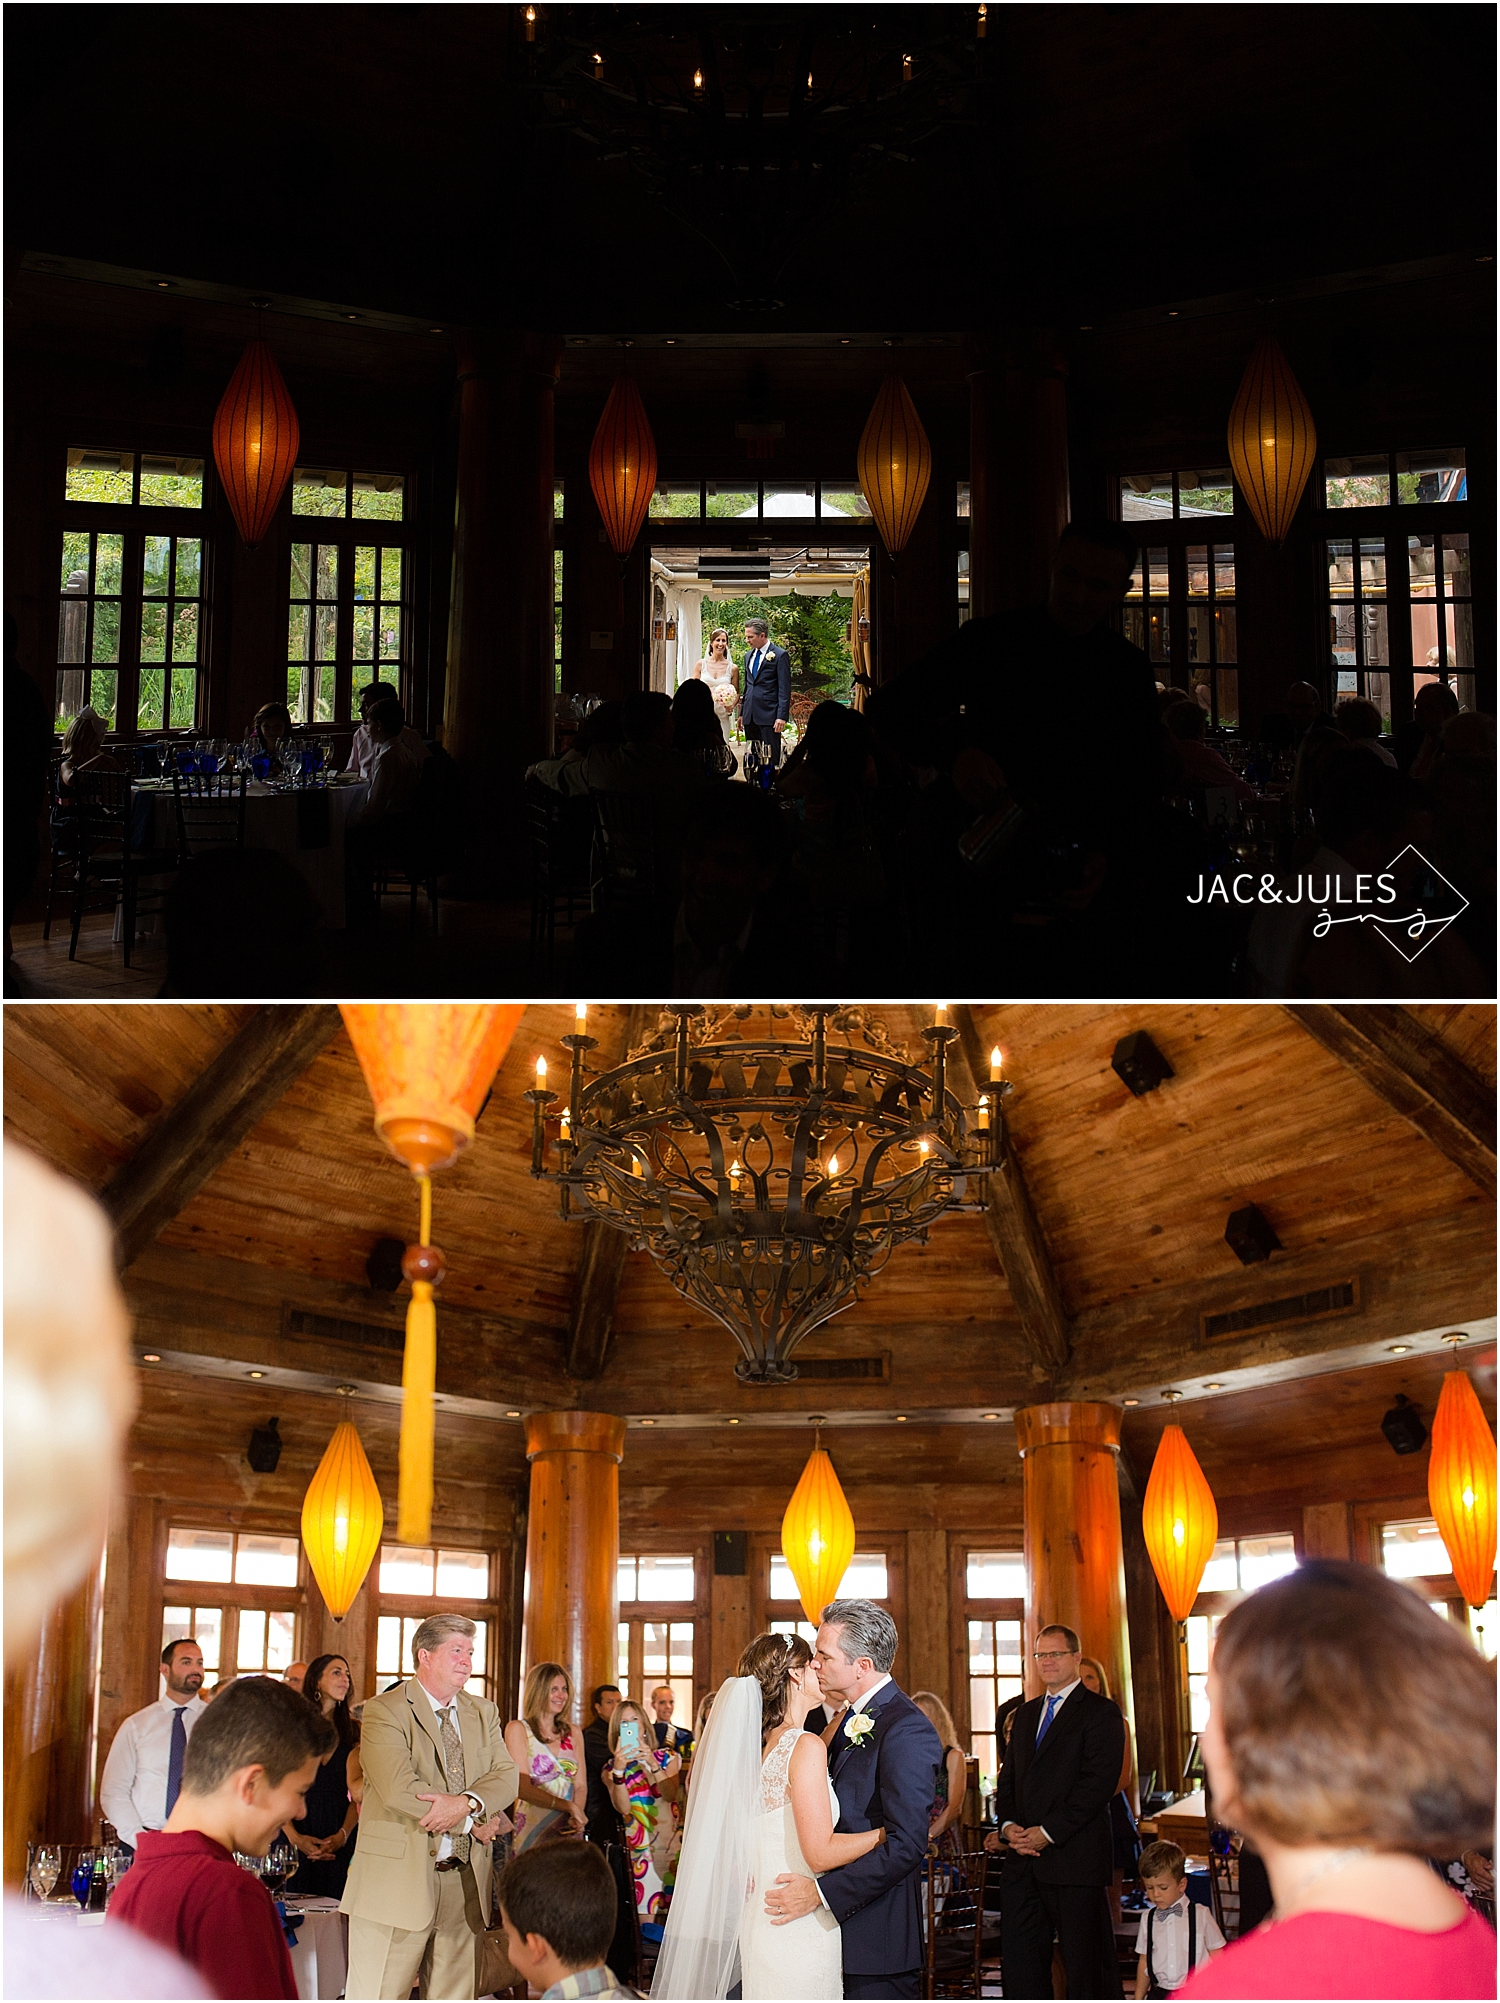 jacnjules photographs a wedding reception at Rat's in Grounds for Sculpture in Hamilton, NJ